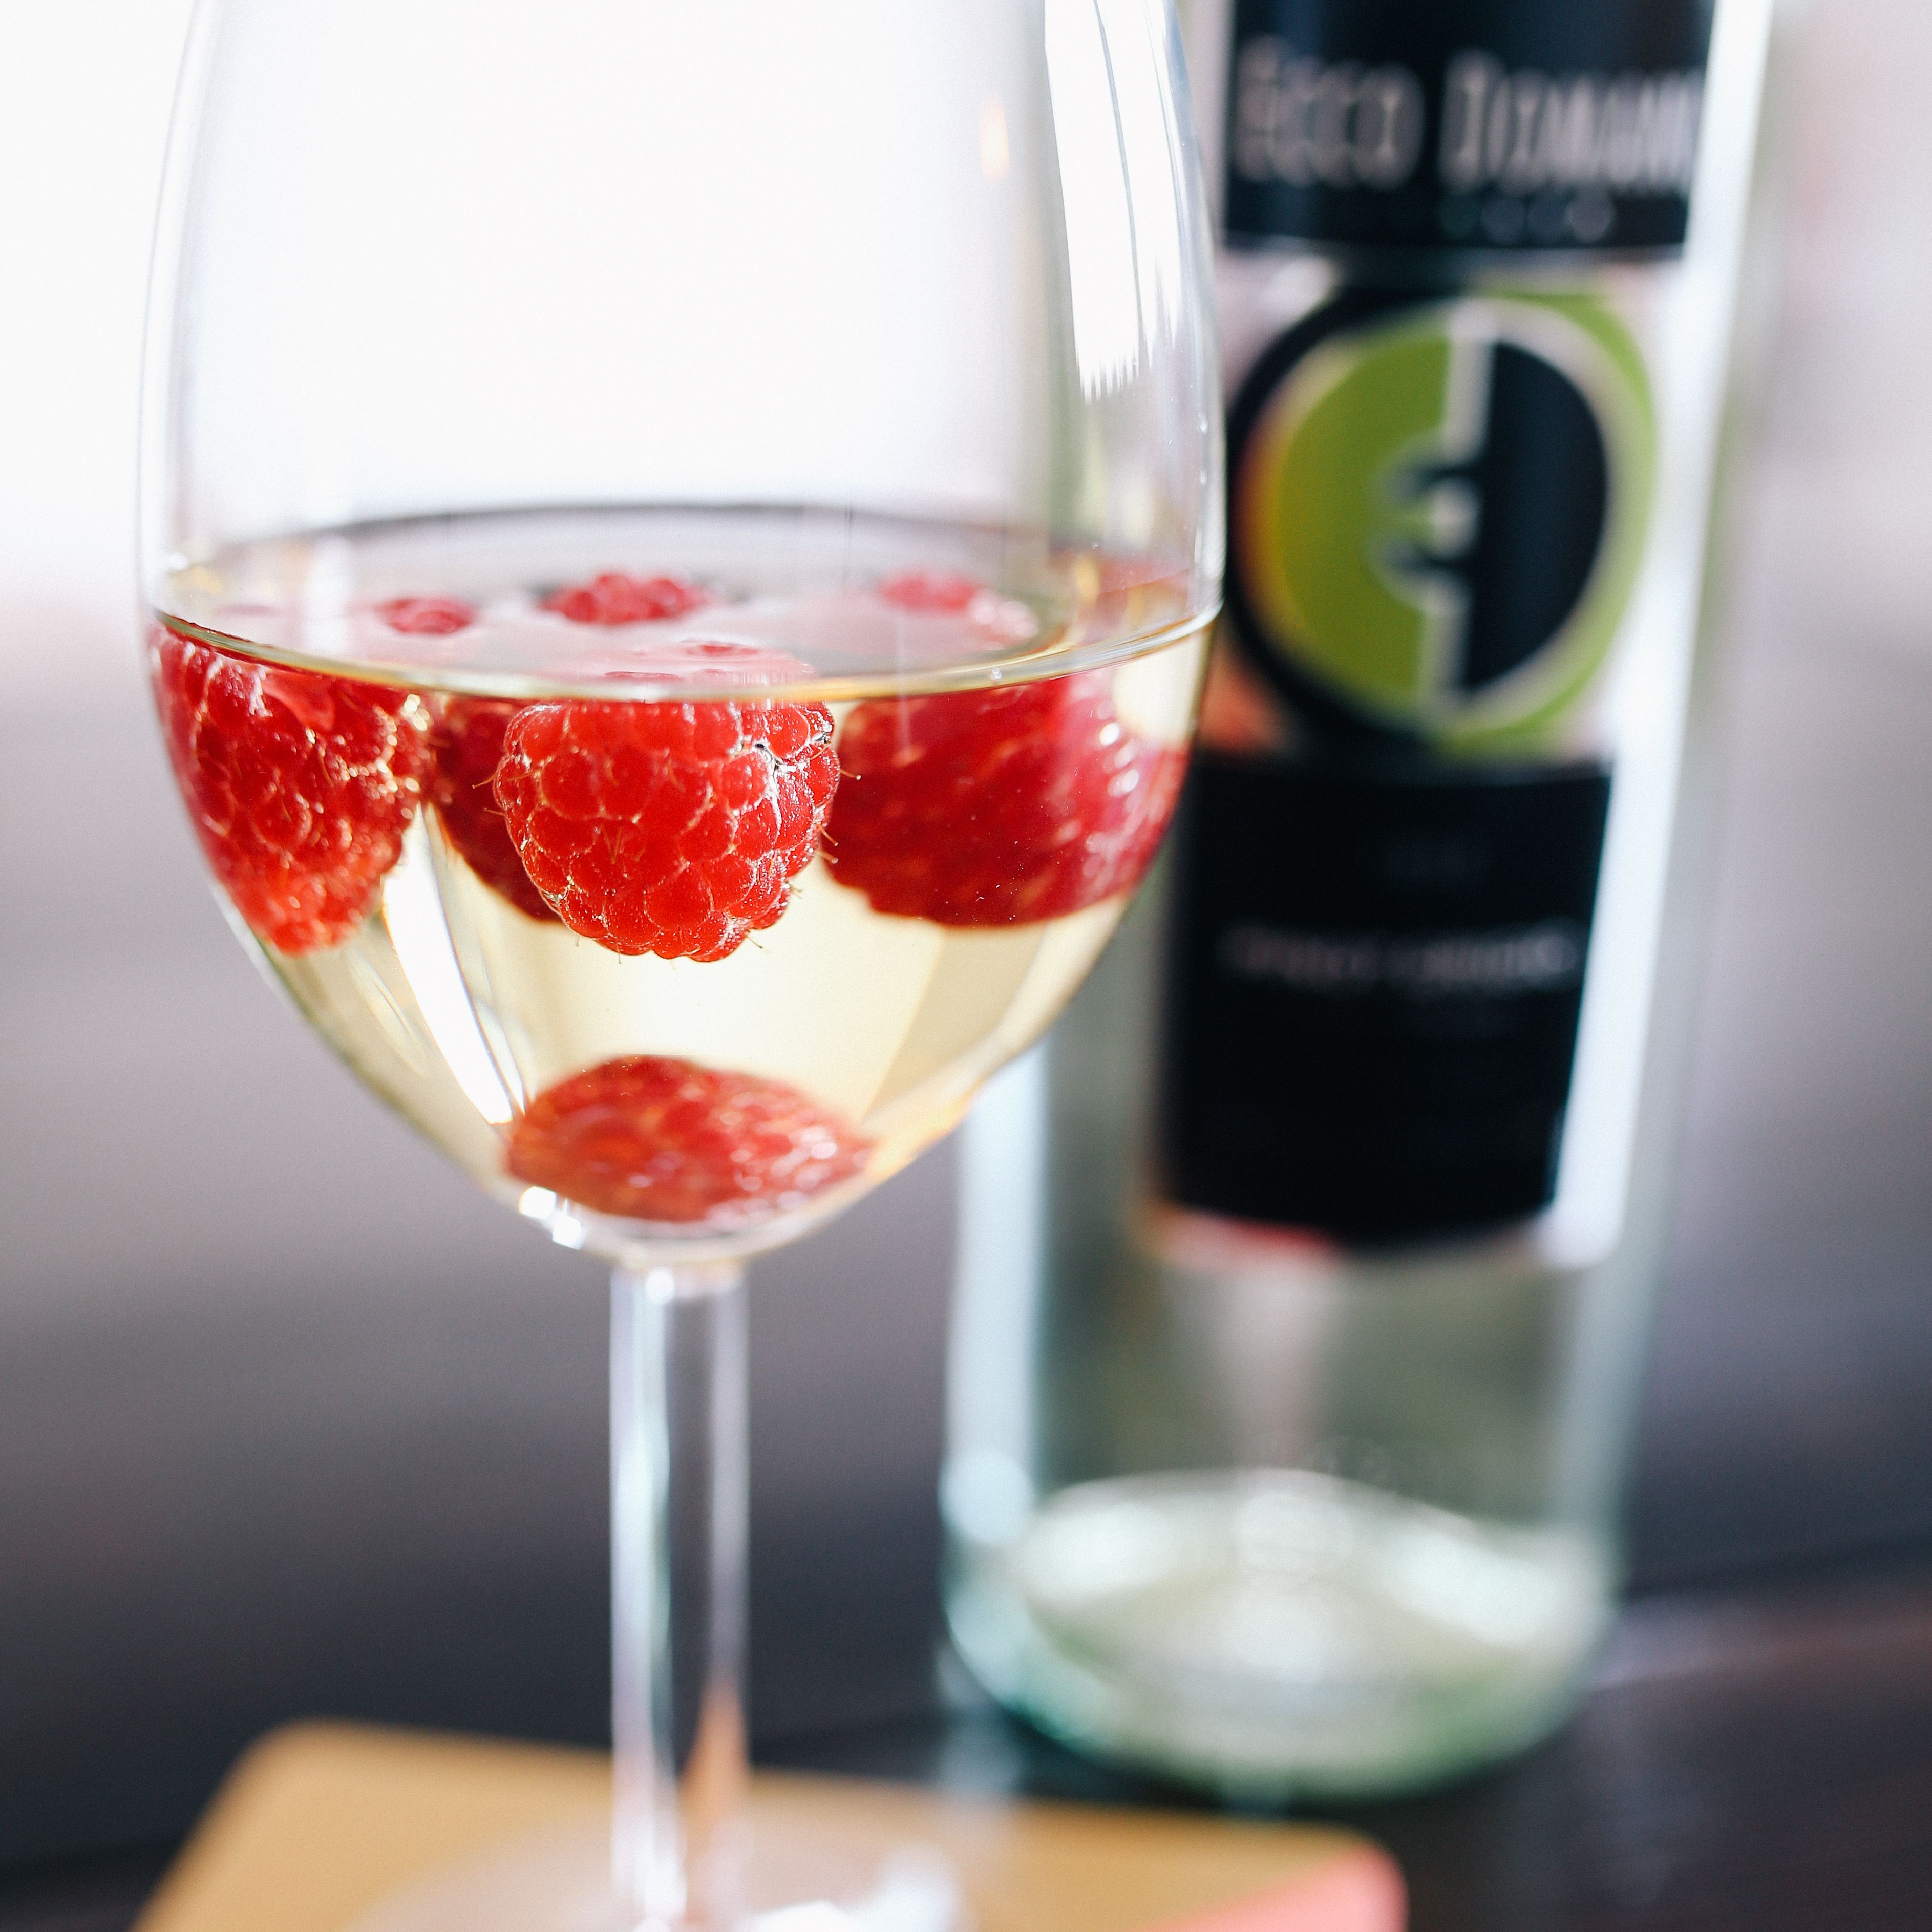 Raspberries Freshen Up A Glass Of Our Pinot Grigio Yummy Drinks Fun Drinks Food